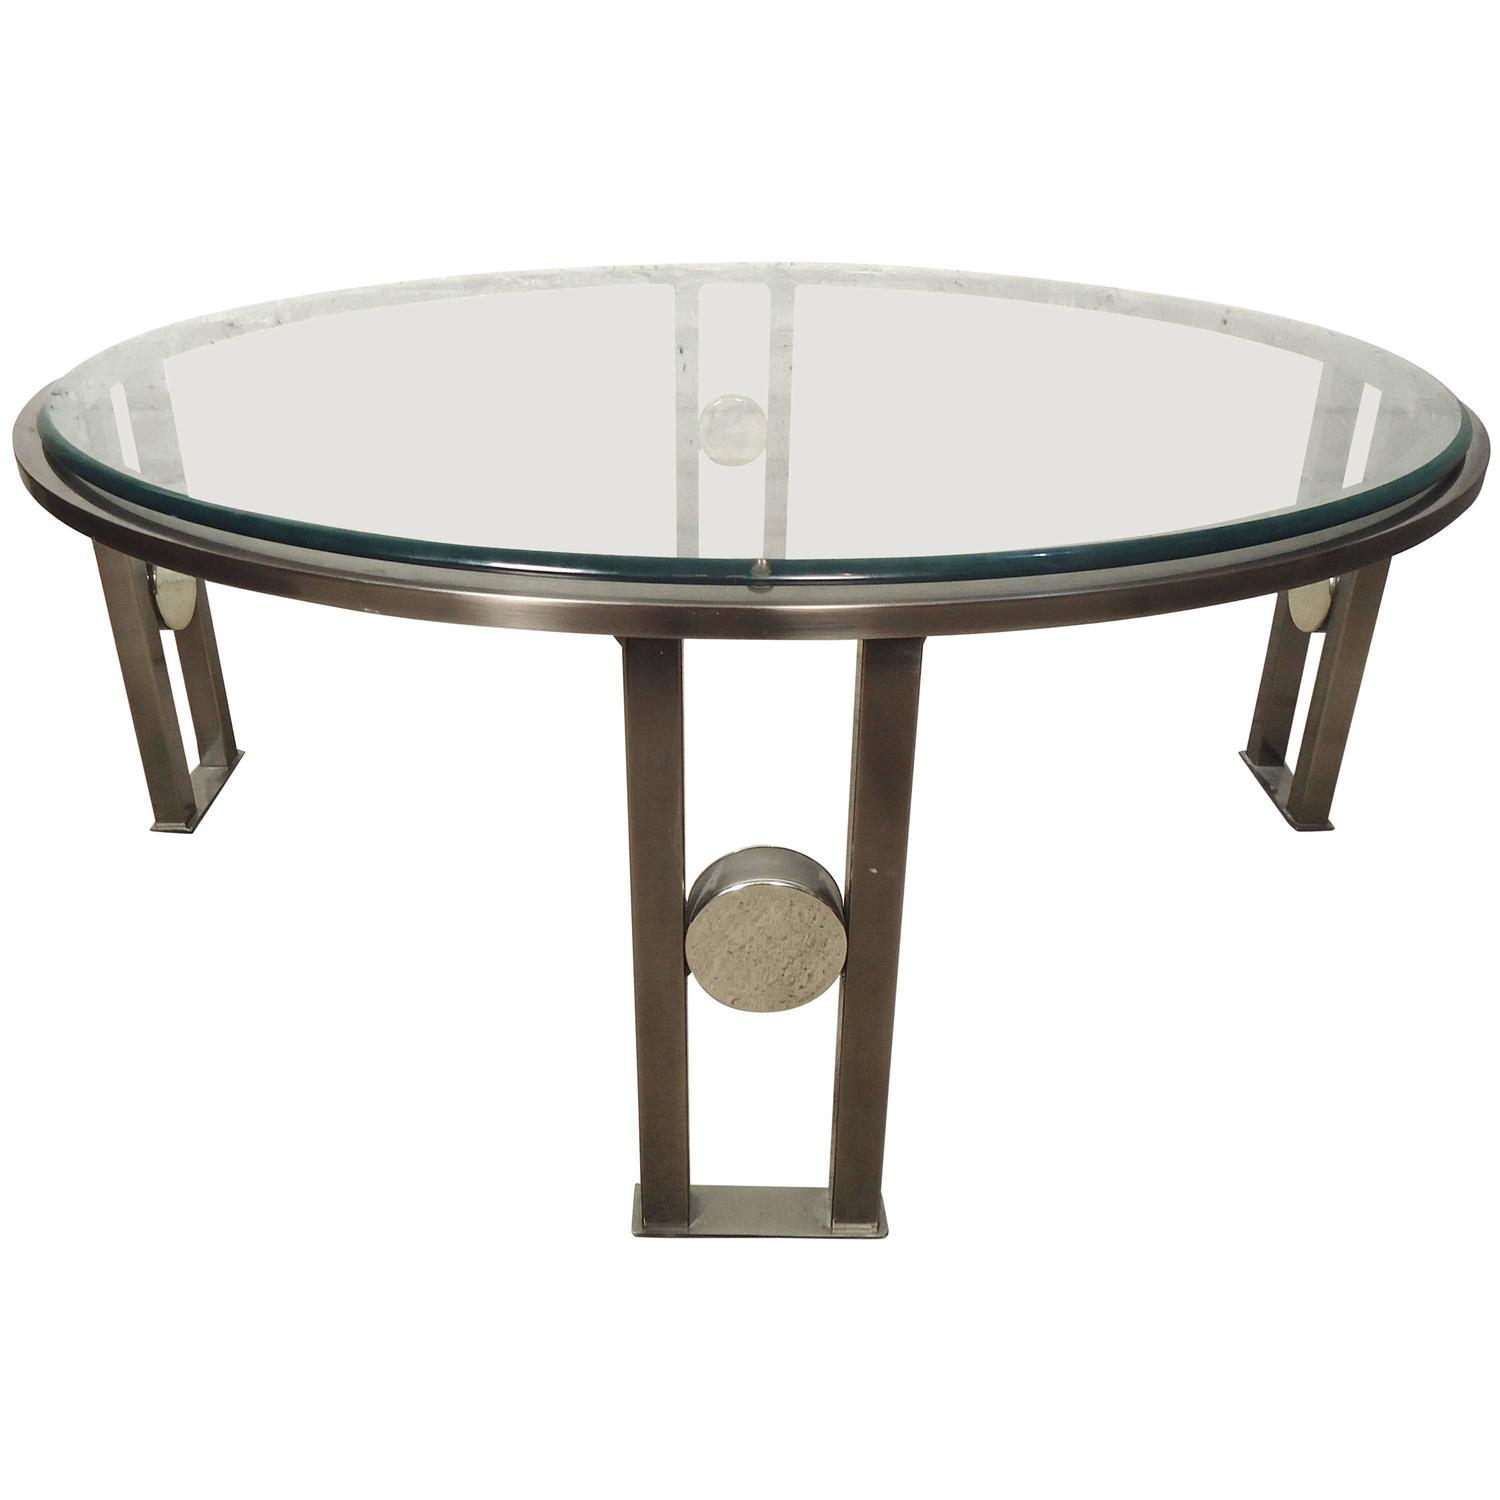 Glass Top Coffee Tables: Round Glass Top Coffee Table At 1stdibs